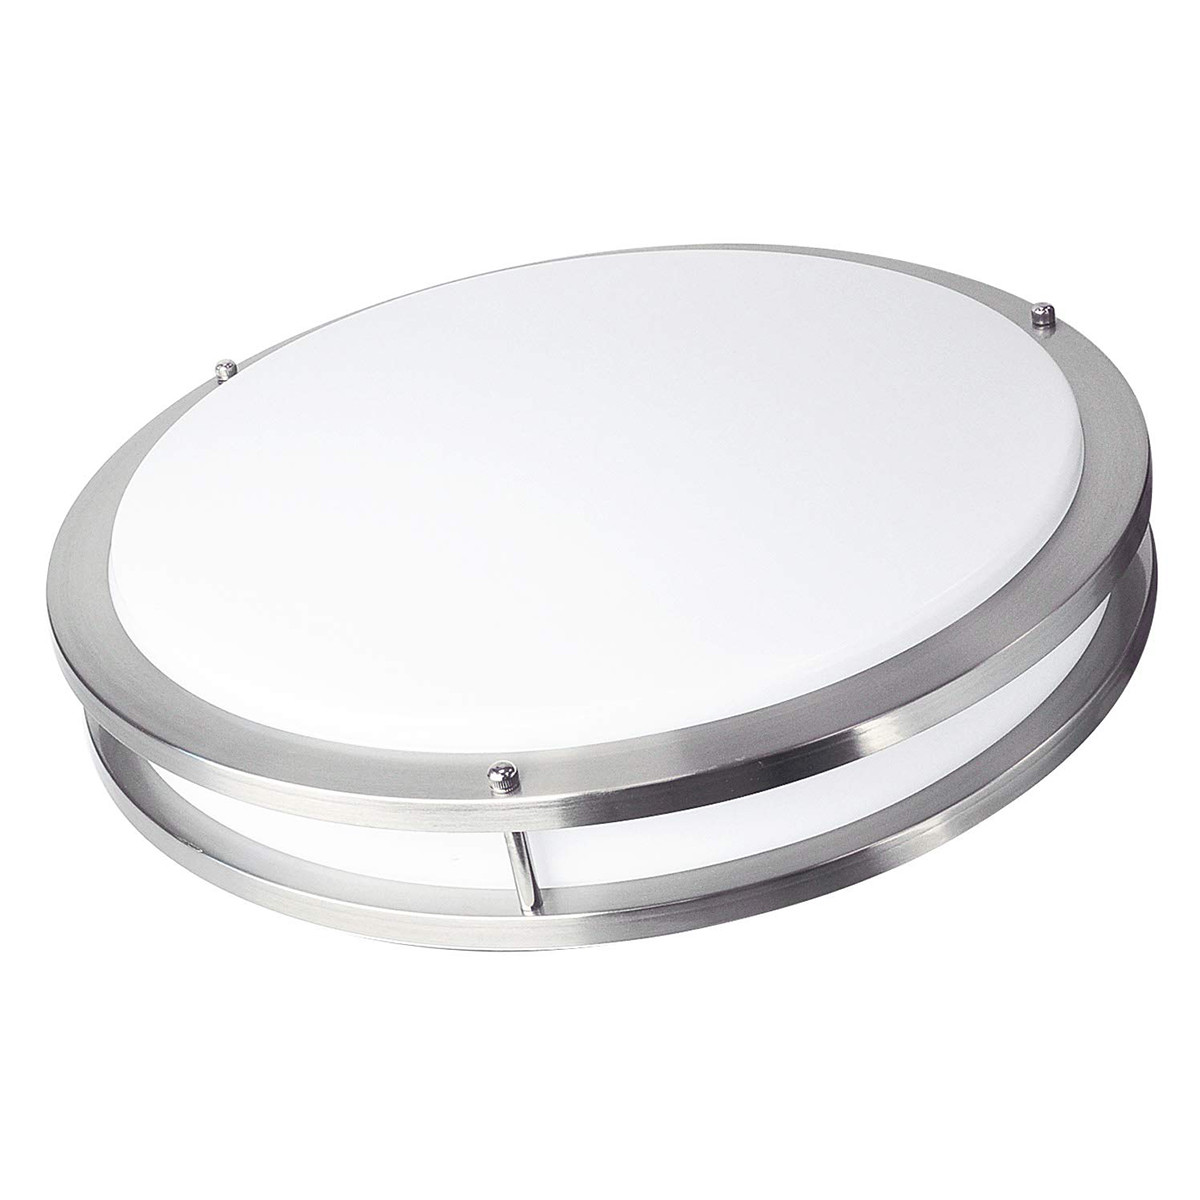 12W 12 inch 80Lm/W ,Flush Mount,  Round  Nickel Finish with Acrylic shade LED Ceiling Light Fixture for Home Lighting